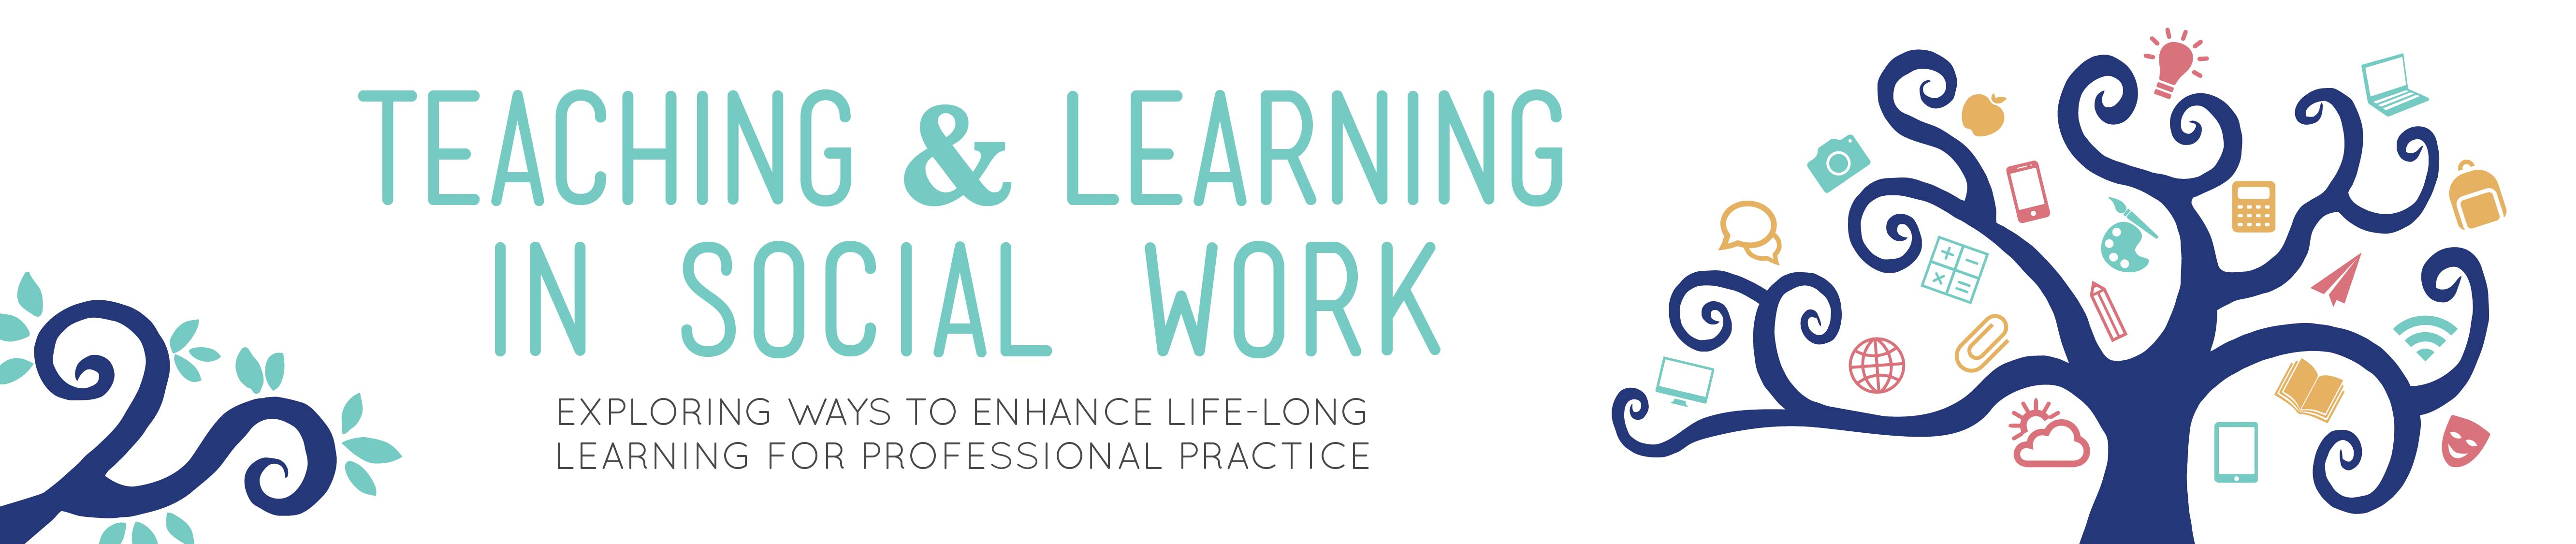 Teaching & Learning in Social Work